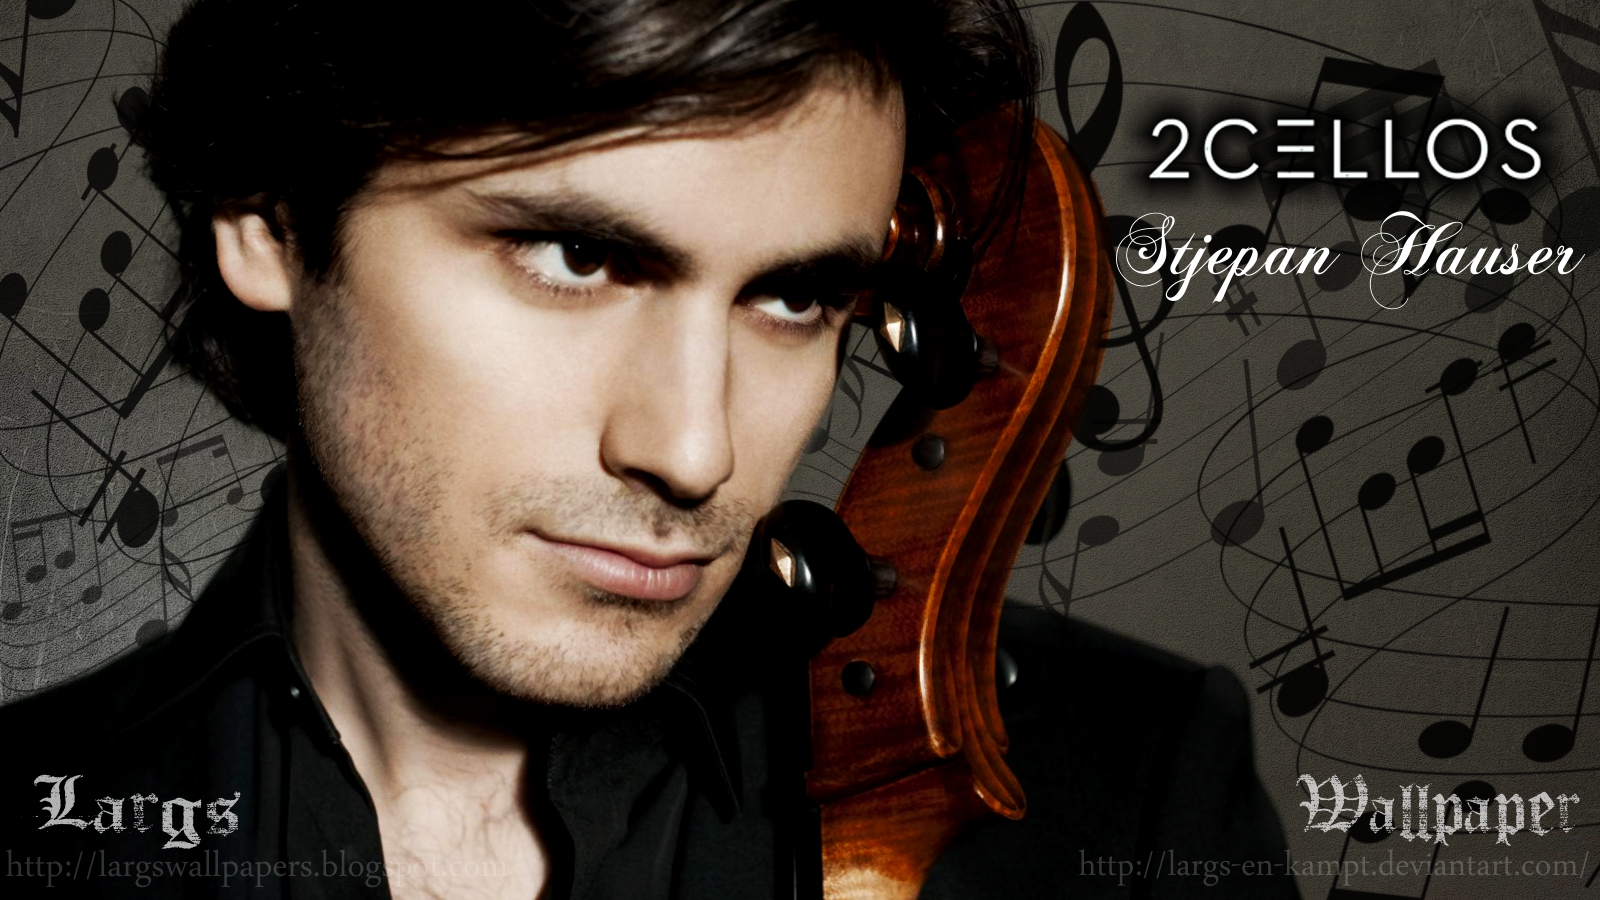 2Cellos - Stjepan Hauser by LargsWall on DeviantArt